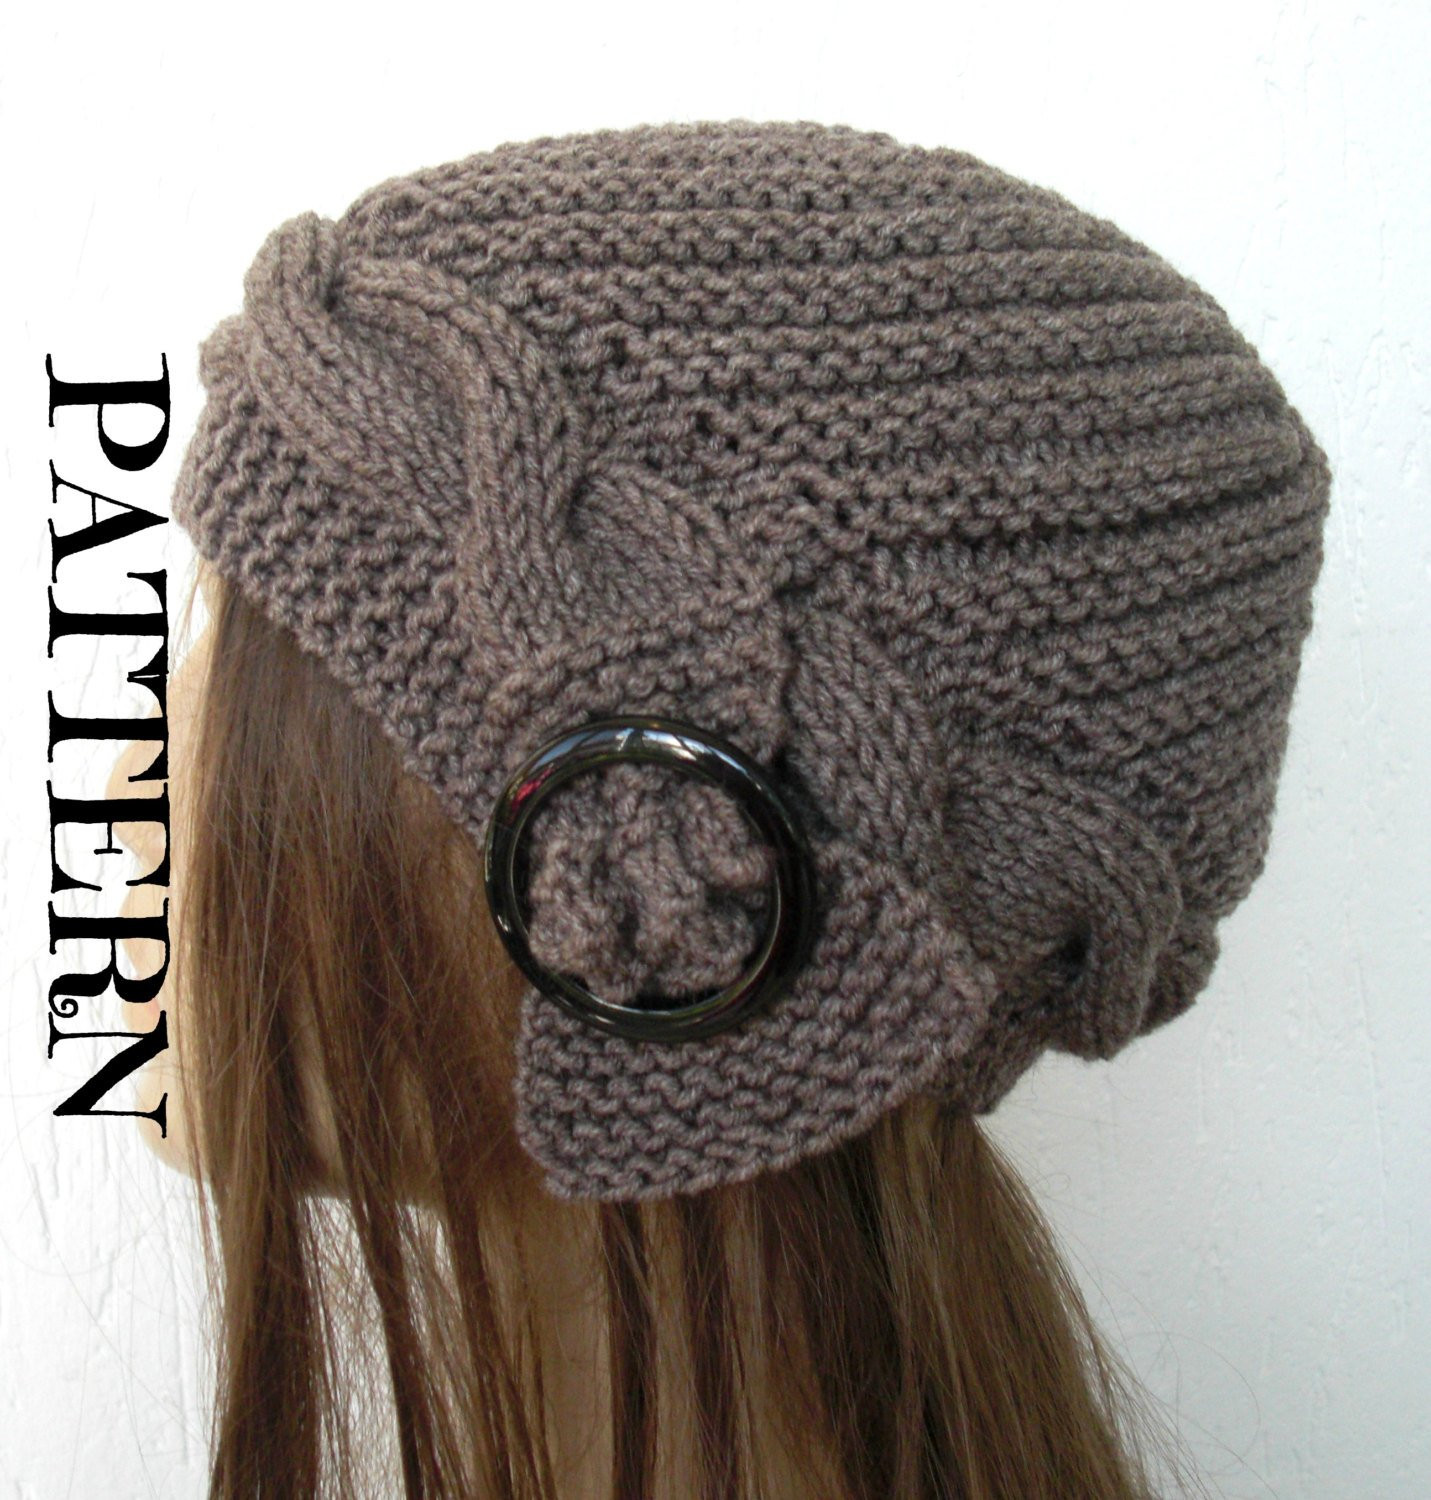 Knit Hat Patterns Lovely Instant Download Knit Hat Pattern Digital Hat Knitting Of Gorgeous 49 Pictures Knit Hat Patterns